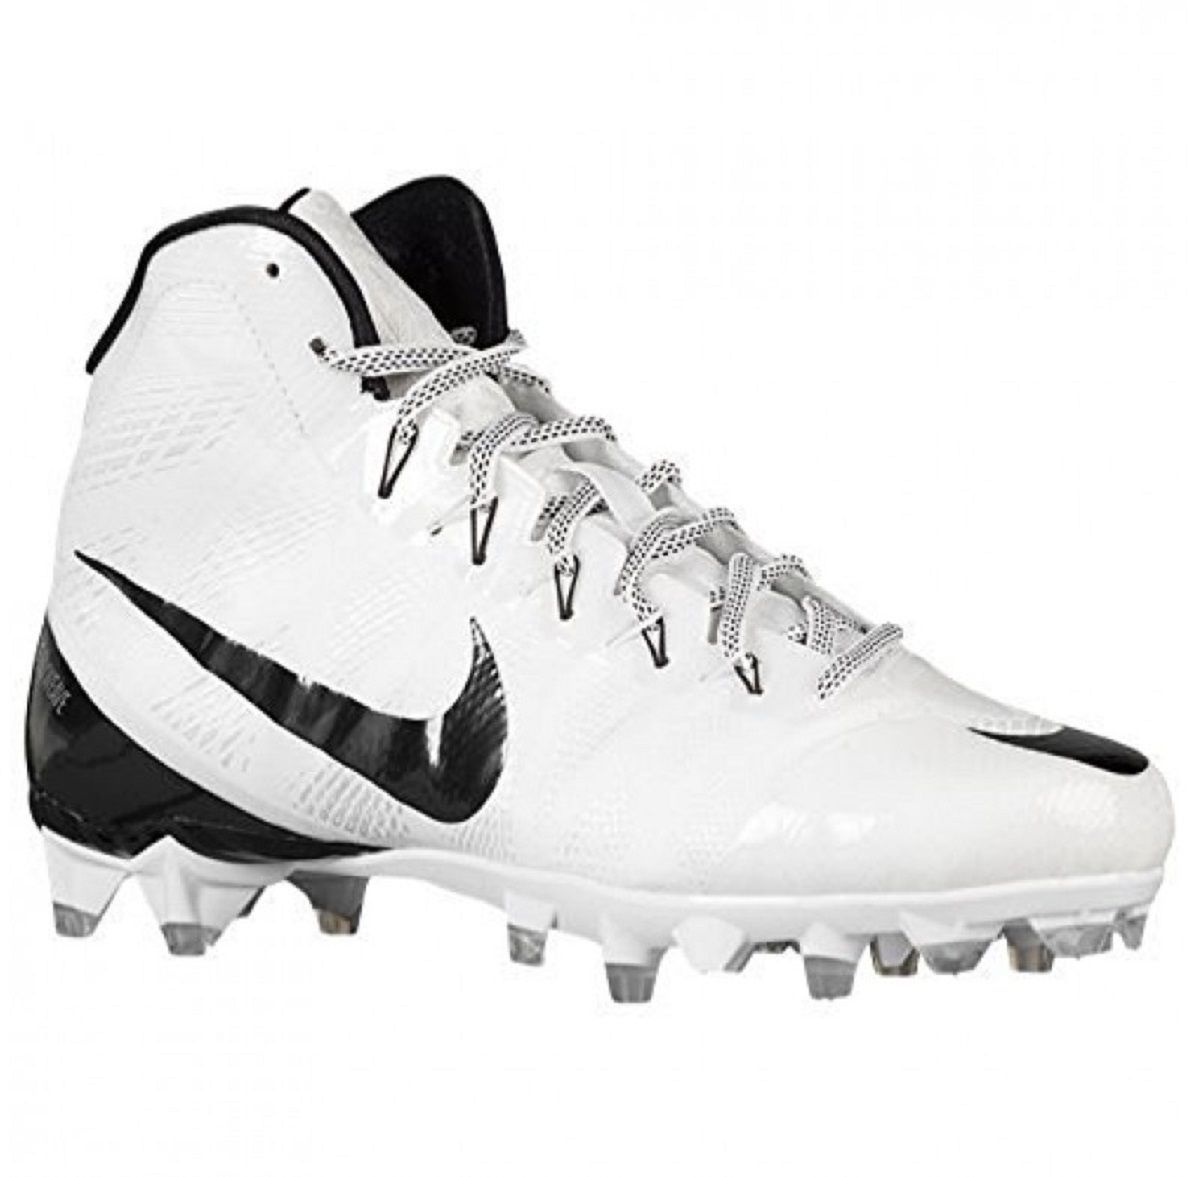 MEN'S NIKE CJ 3 FLYWEAVE ELITE TD FOOTBALL CLEATS WHITE SIZE 9 NEW 725226  100